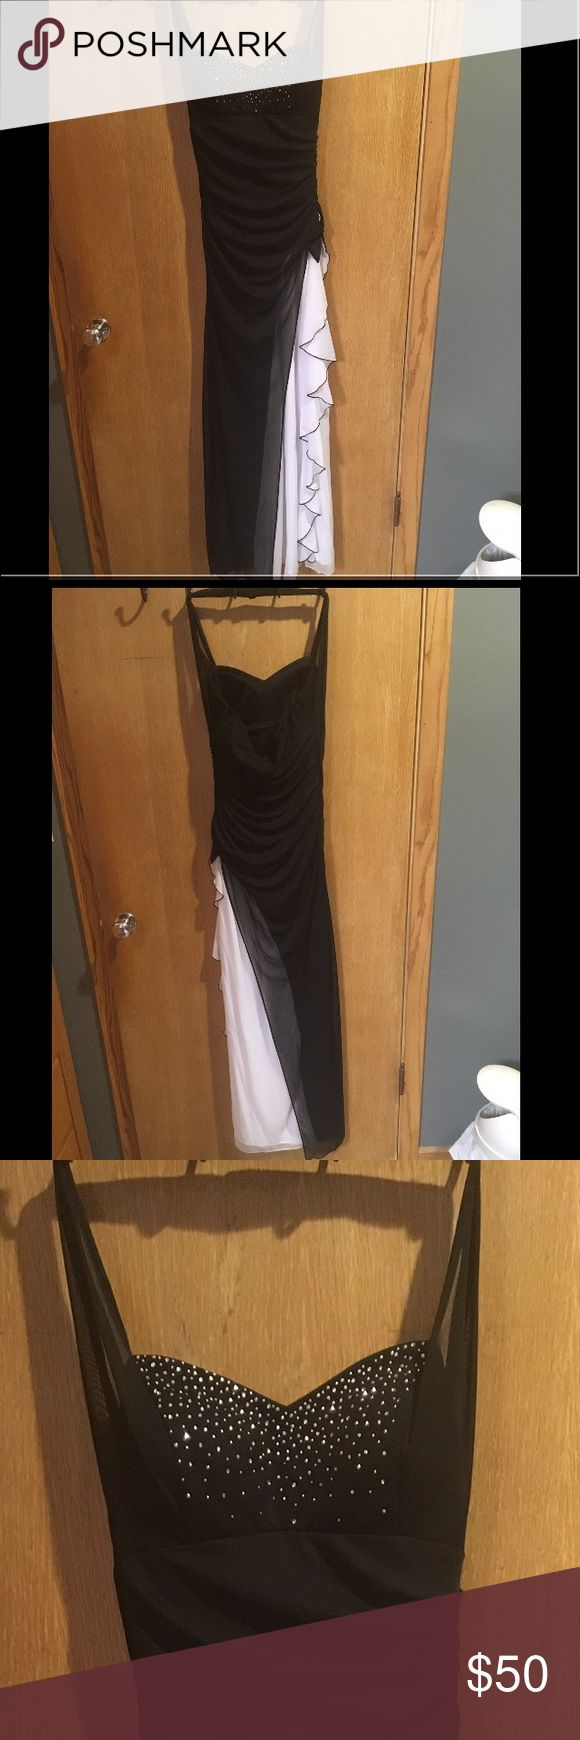 Formal dress Formal black and white dress, hemmed to fit size 7/8. I tried to zoom in so you can see the dress better. I'm 5'7 and the dress fit me perfectly length wise, feel free to make an offer Dresses Prom